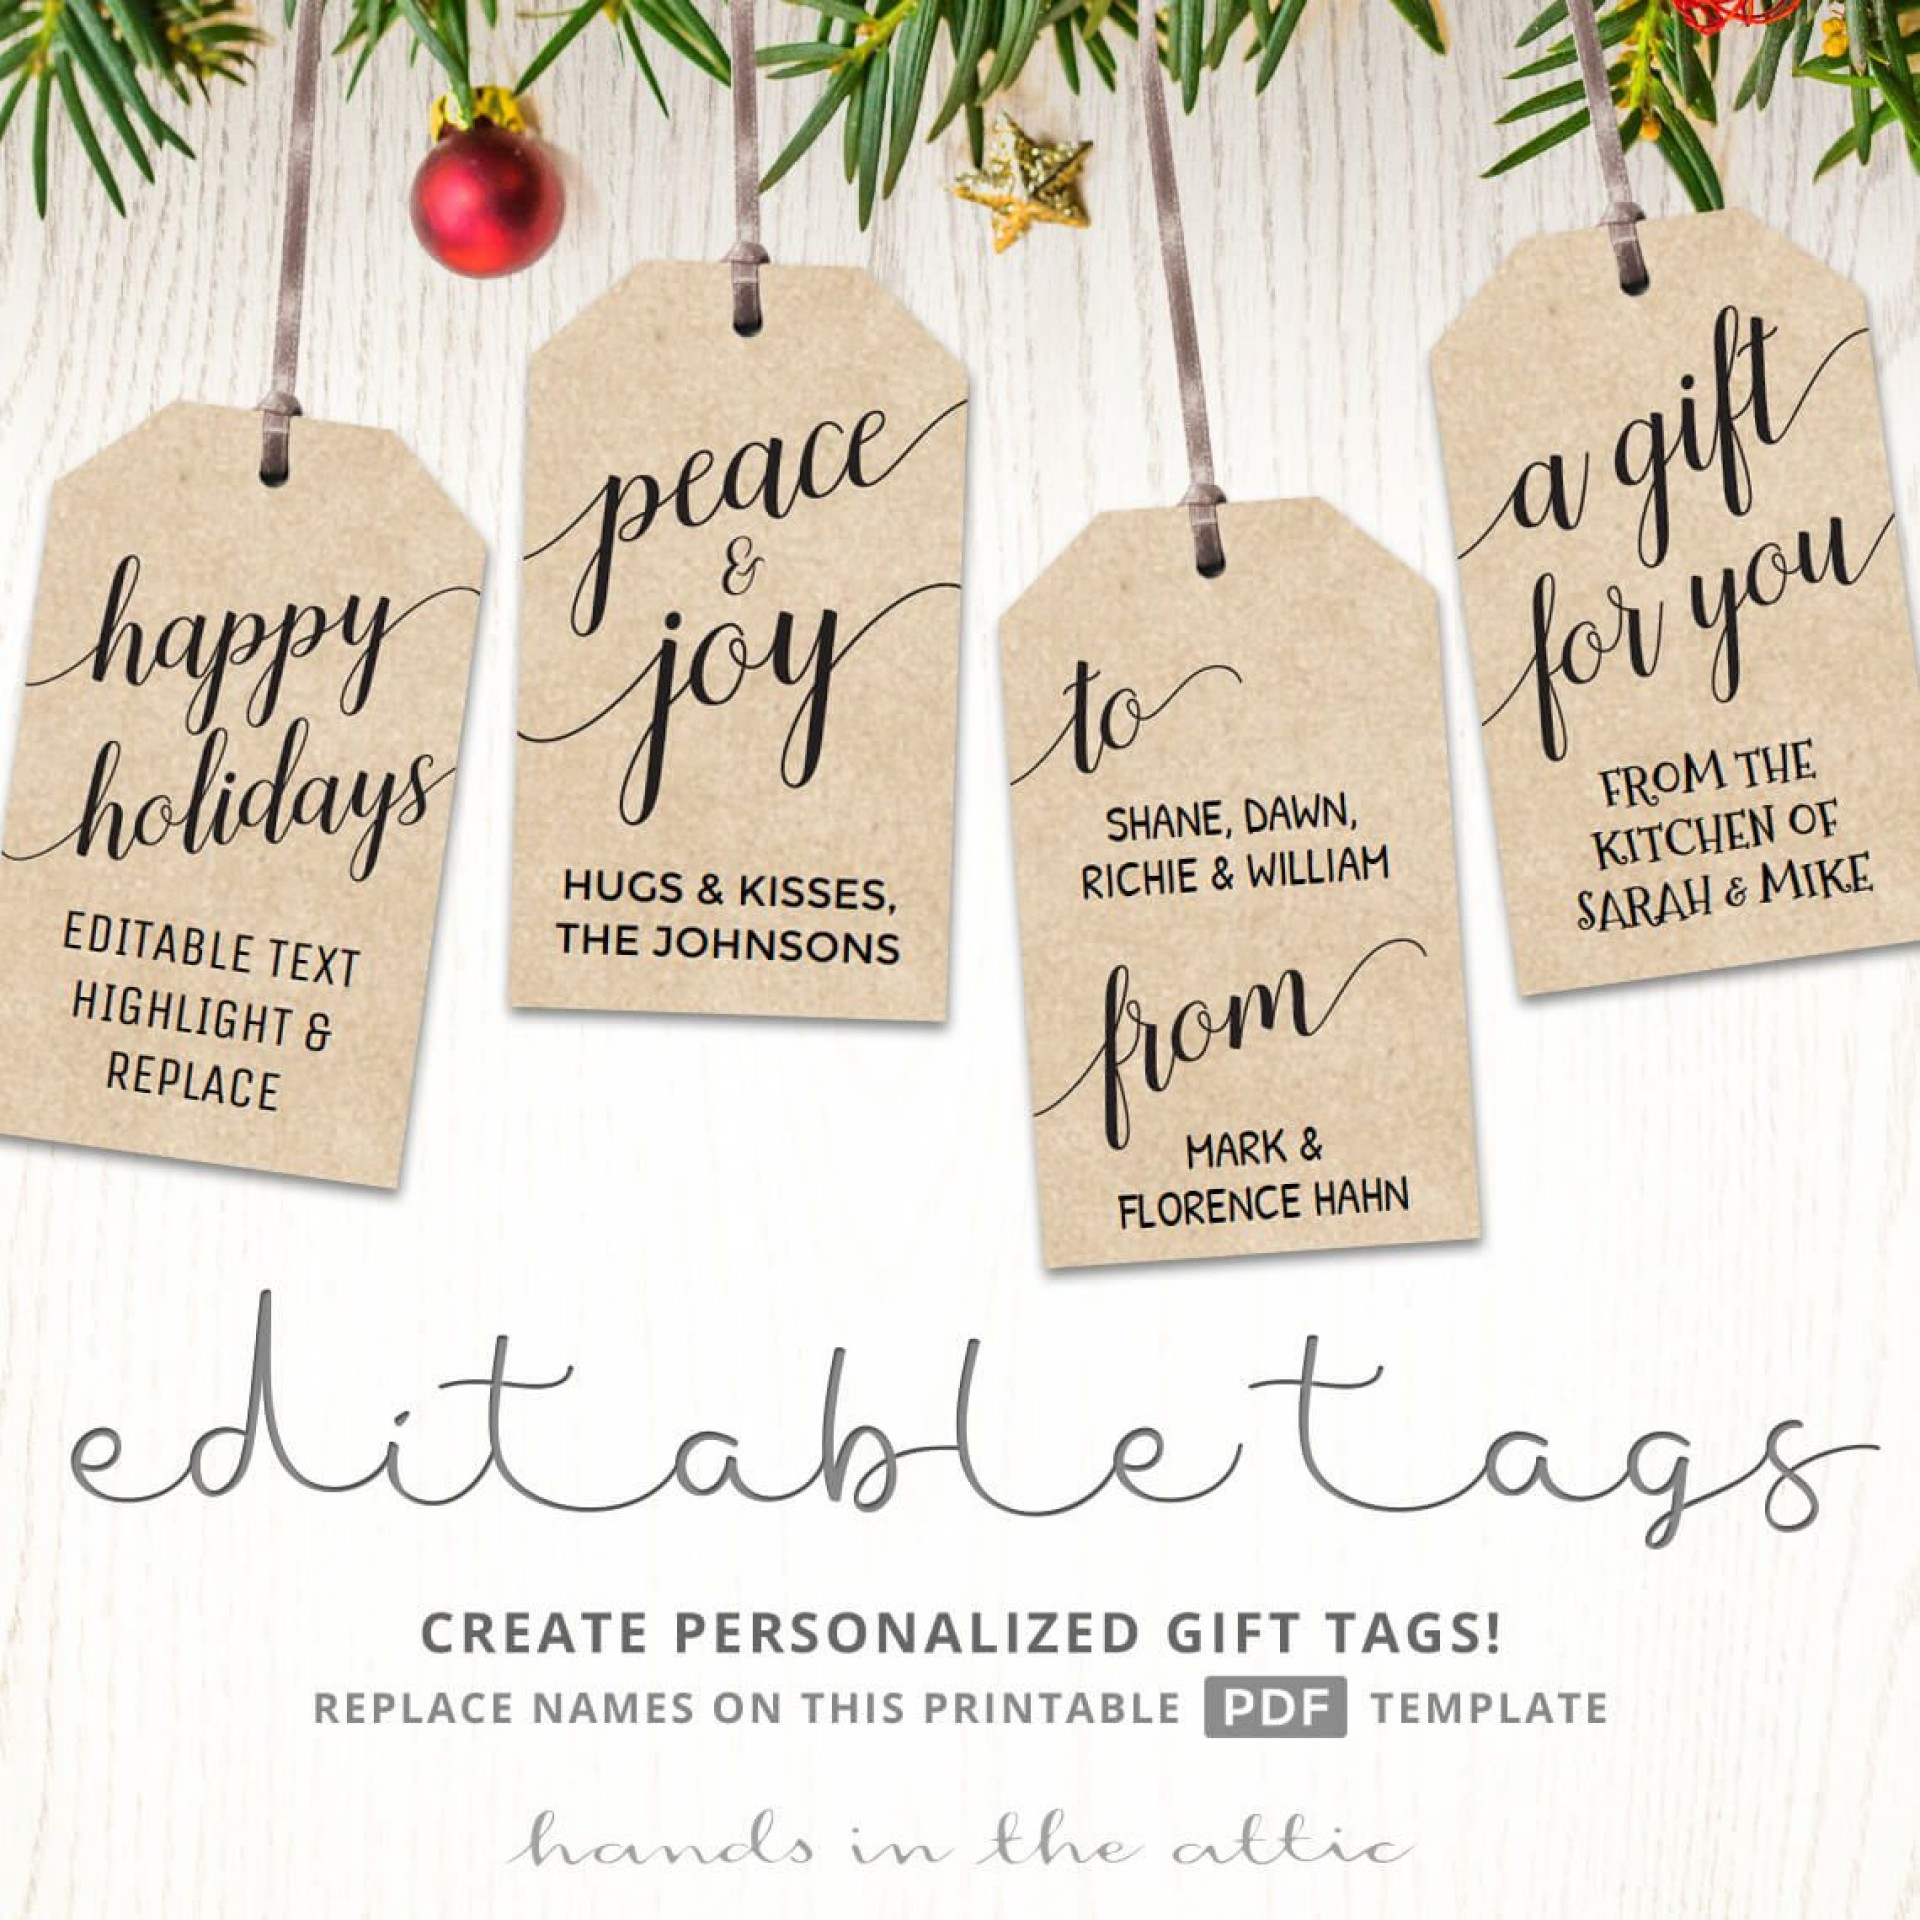 006 Rare Printable Christma Gift Tag Template High Definition  Templates Free Holiday For Word1920